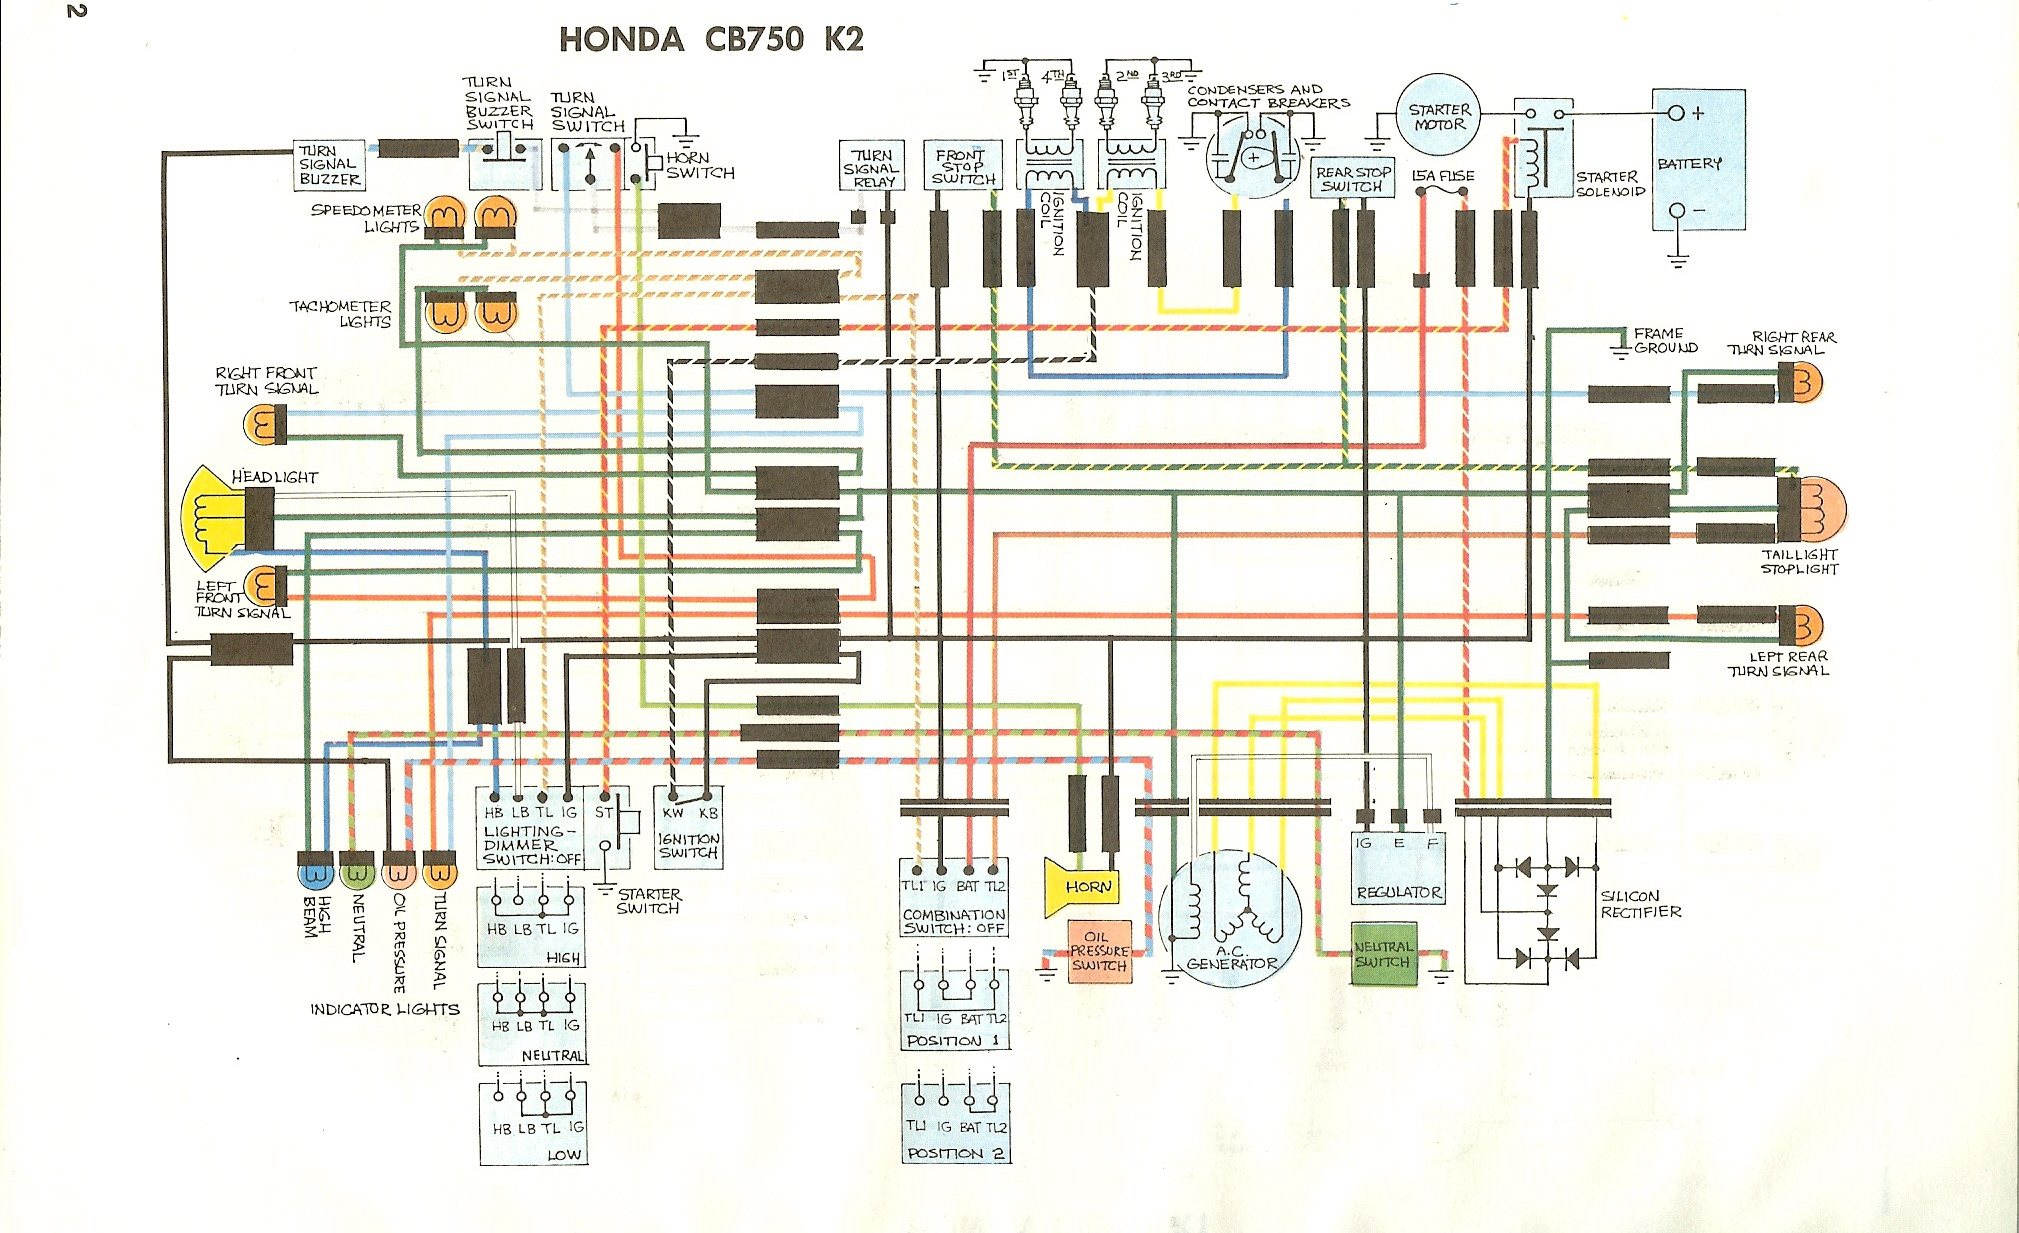 Honda 350 Wiring Diagram Great Design Of Starter 1971 Marine Chevy 1976 Cb 750 Detailed Schematics Rh Jppastryarts Com 1987 Fourtrax 4x4